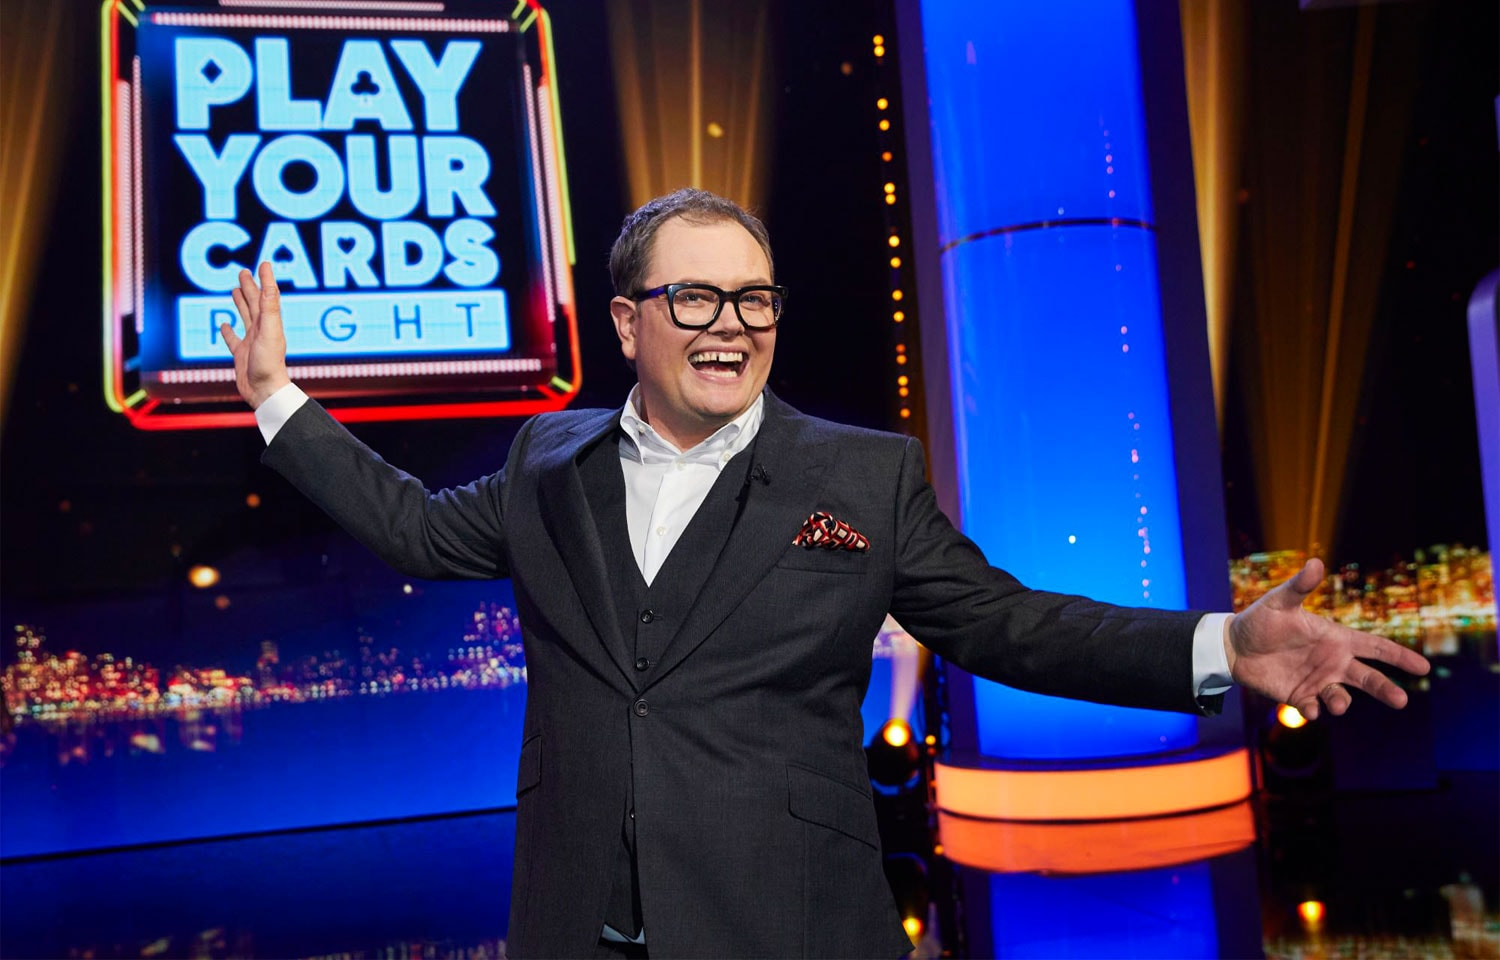 ALAN CARR'S EPIC GAMESHOW RETURNS FOR A SECOND SERIES